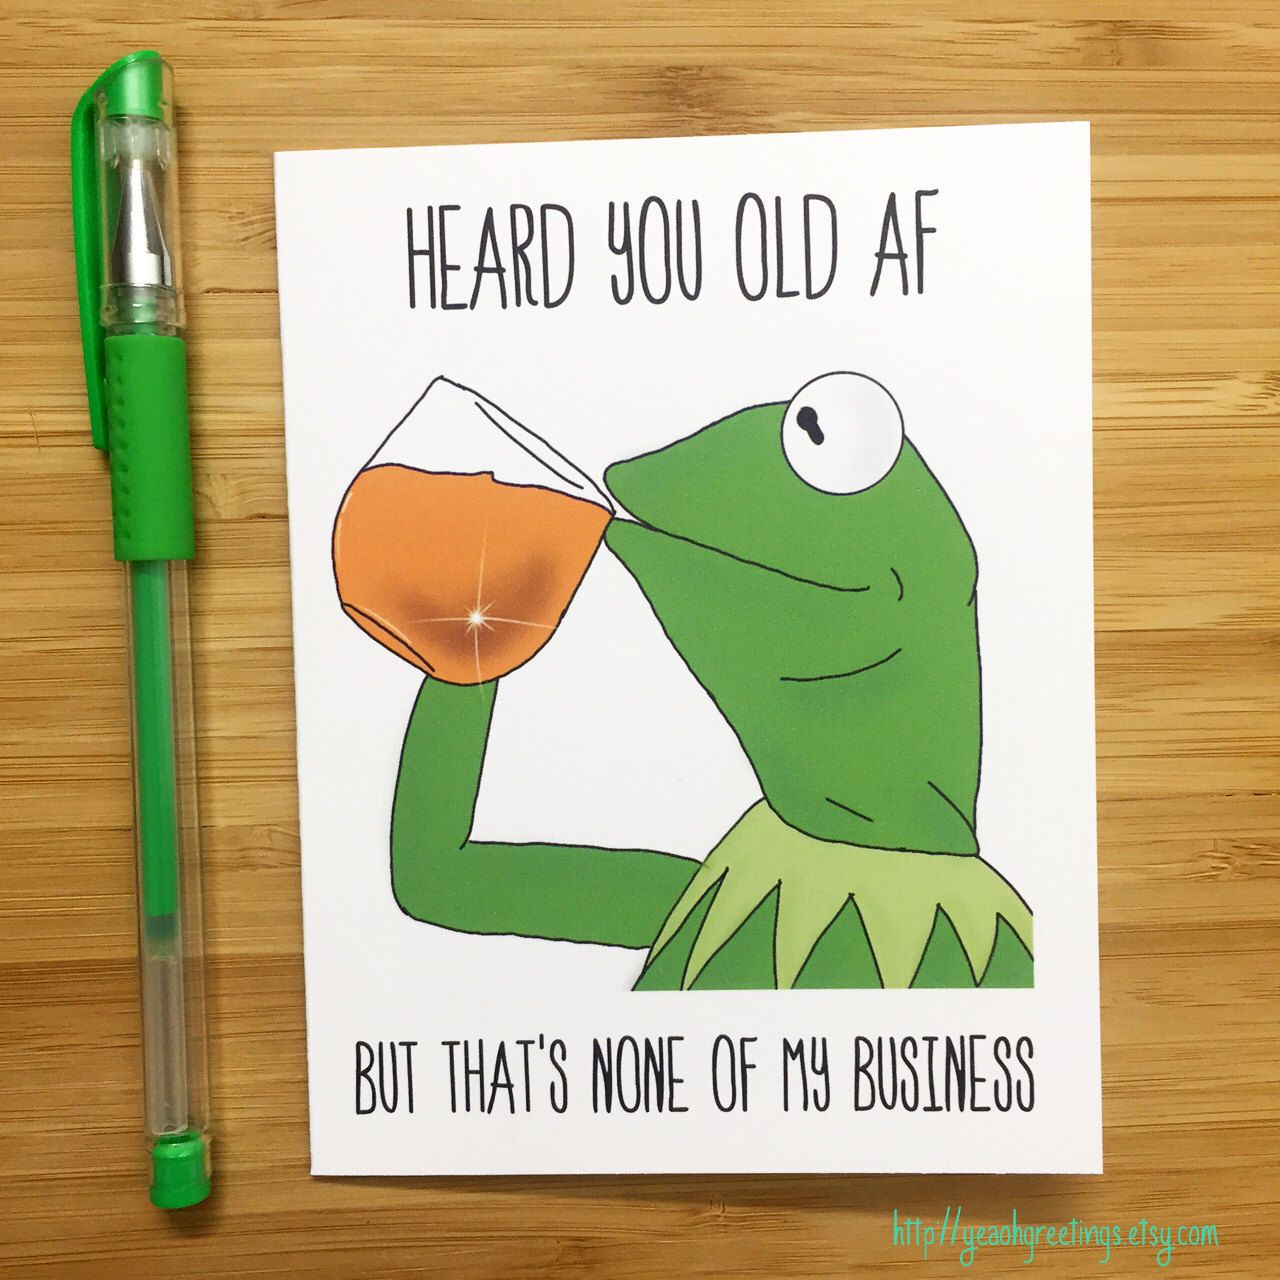 Funny birthday card kermit the frog kermit muppets meme card funny birthday card kermit the frog kermit muppets meme card birthday kristyandbryce Image collections